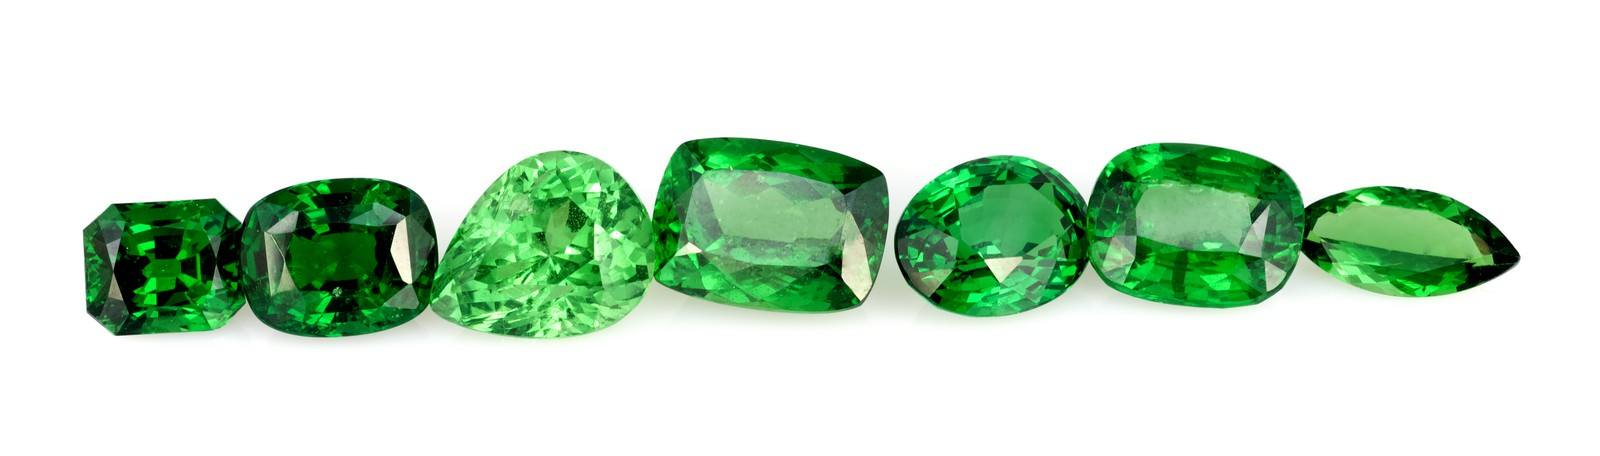 Natural tsavorite gemstone dealer and sales